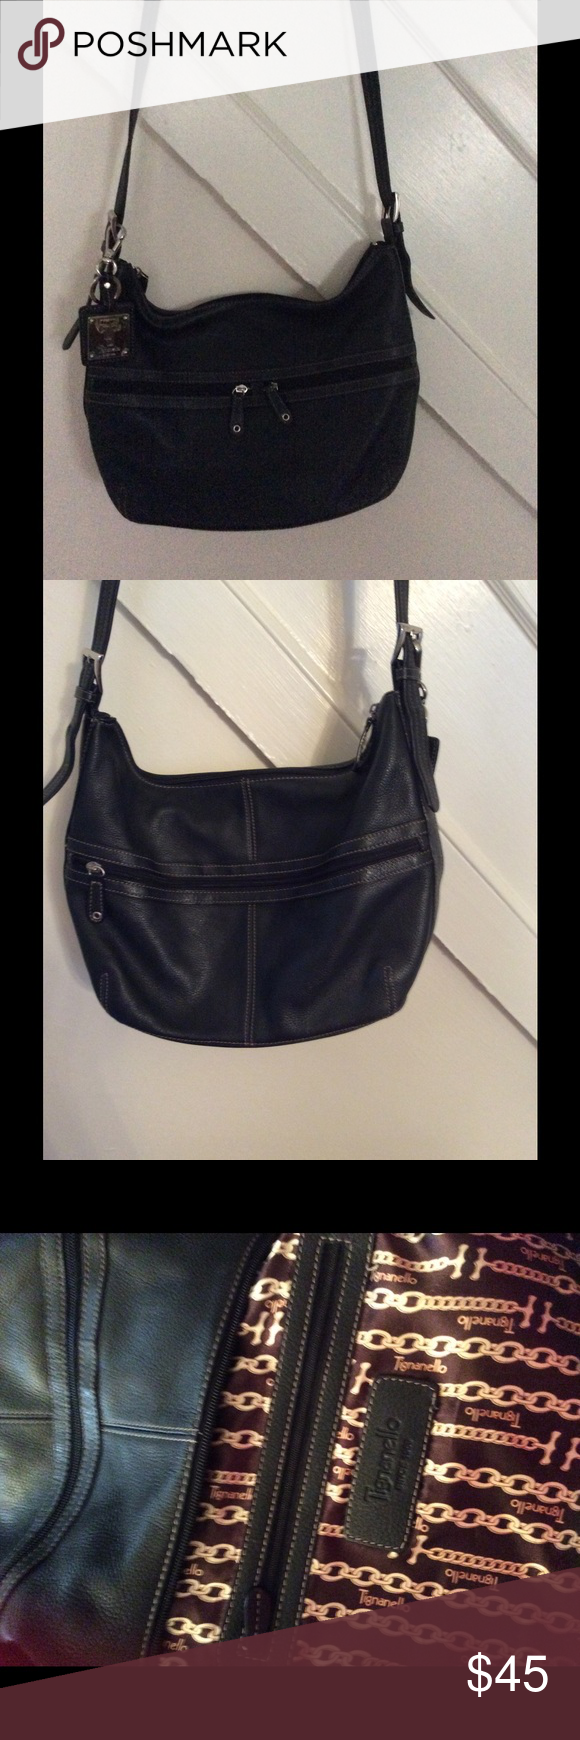 Like New Black Tignanello Bag 4 Free Key Chains This Is A Leather